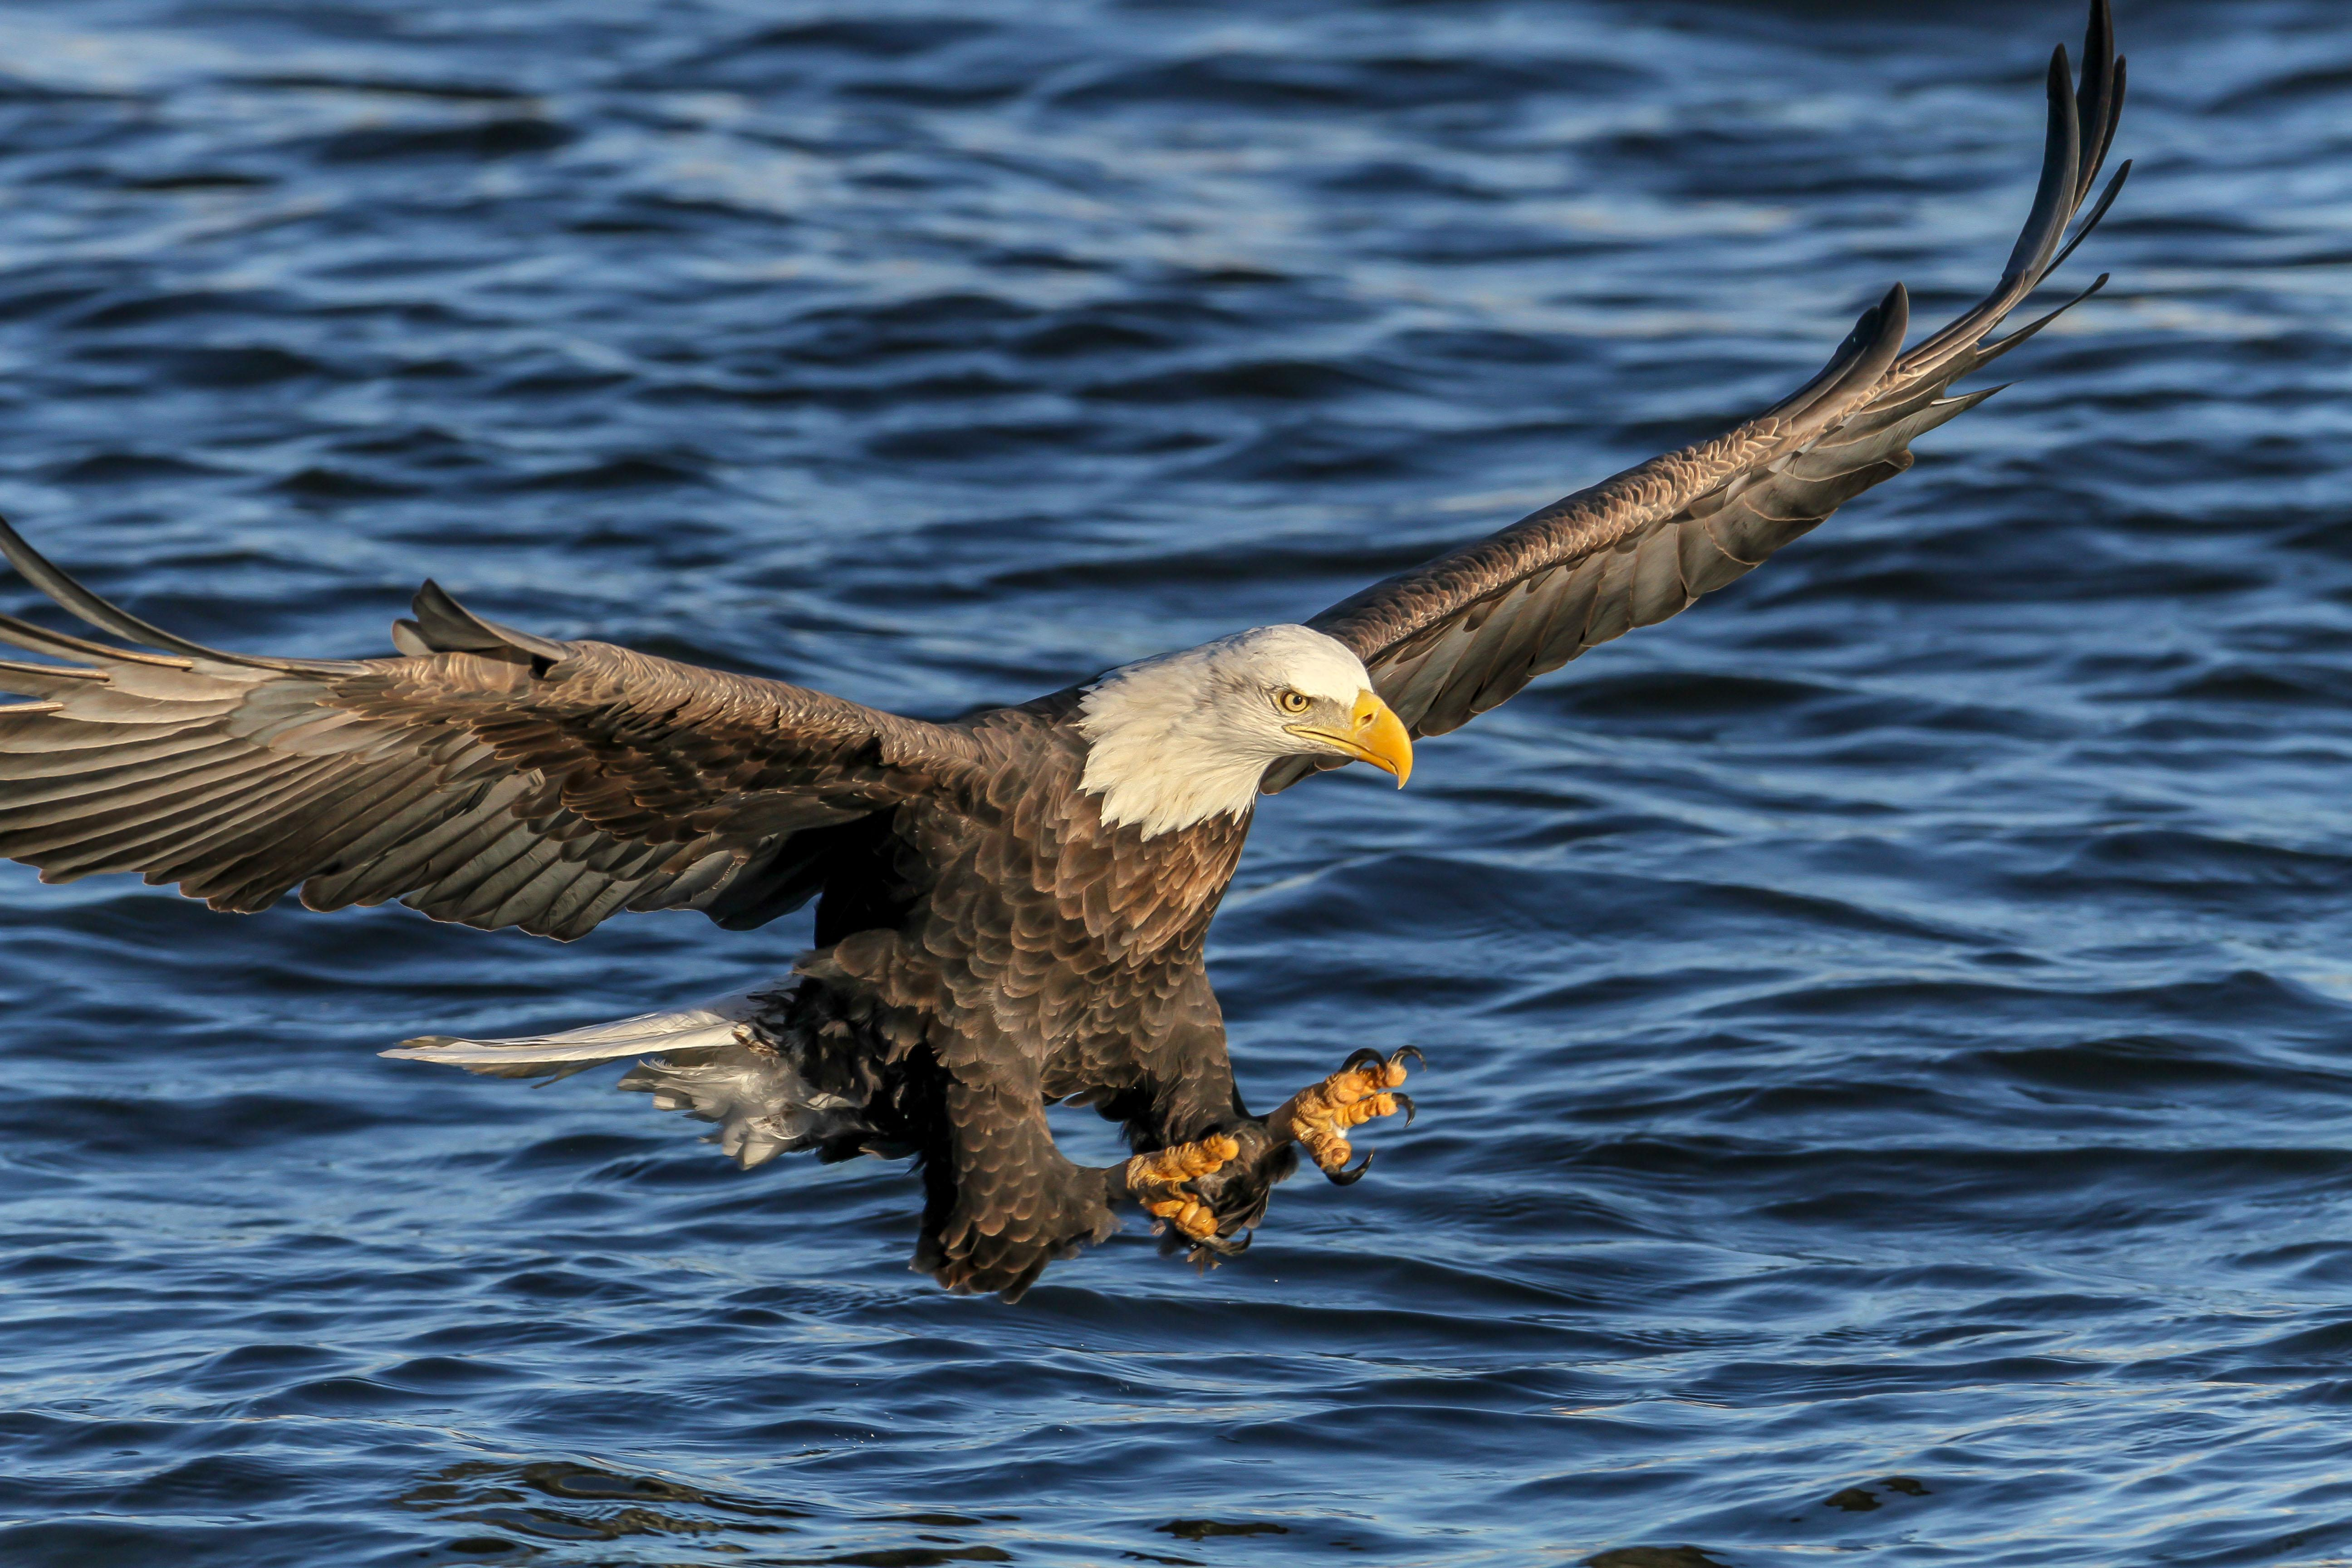 A bald eagle fishing on the Mississippi River. (Photo credit: Josh Feeney)